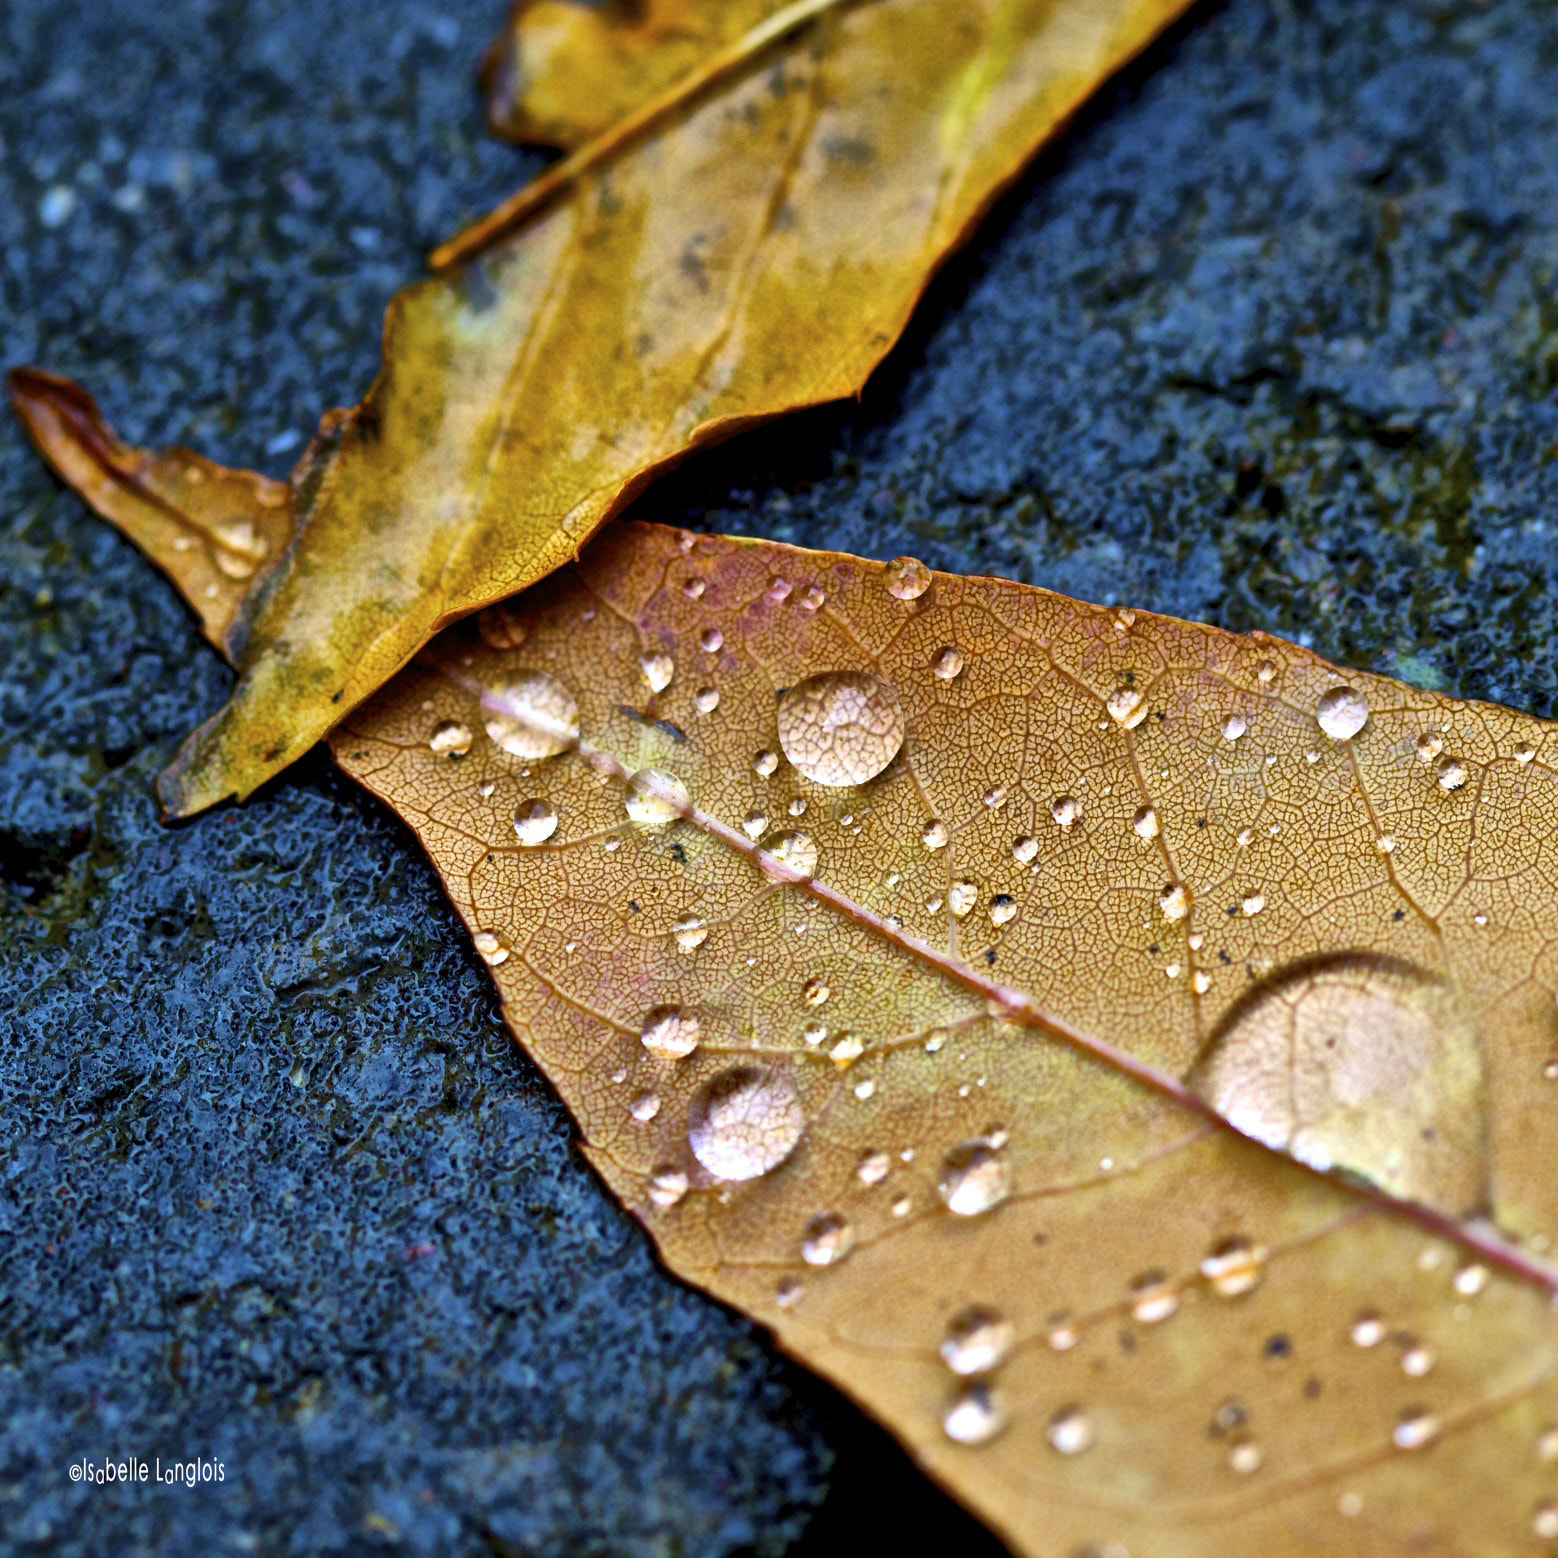 Photograph After the rain by Isabelle Langlois on 500px